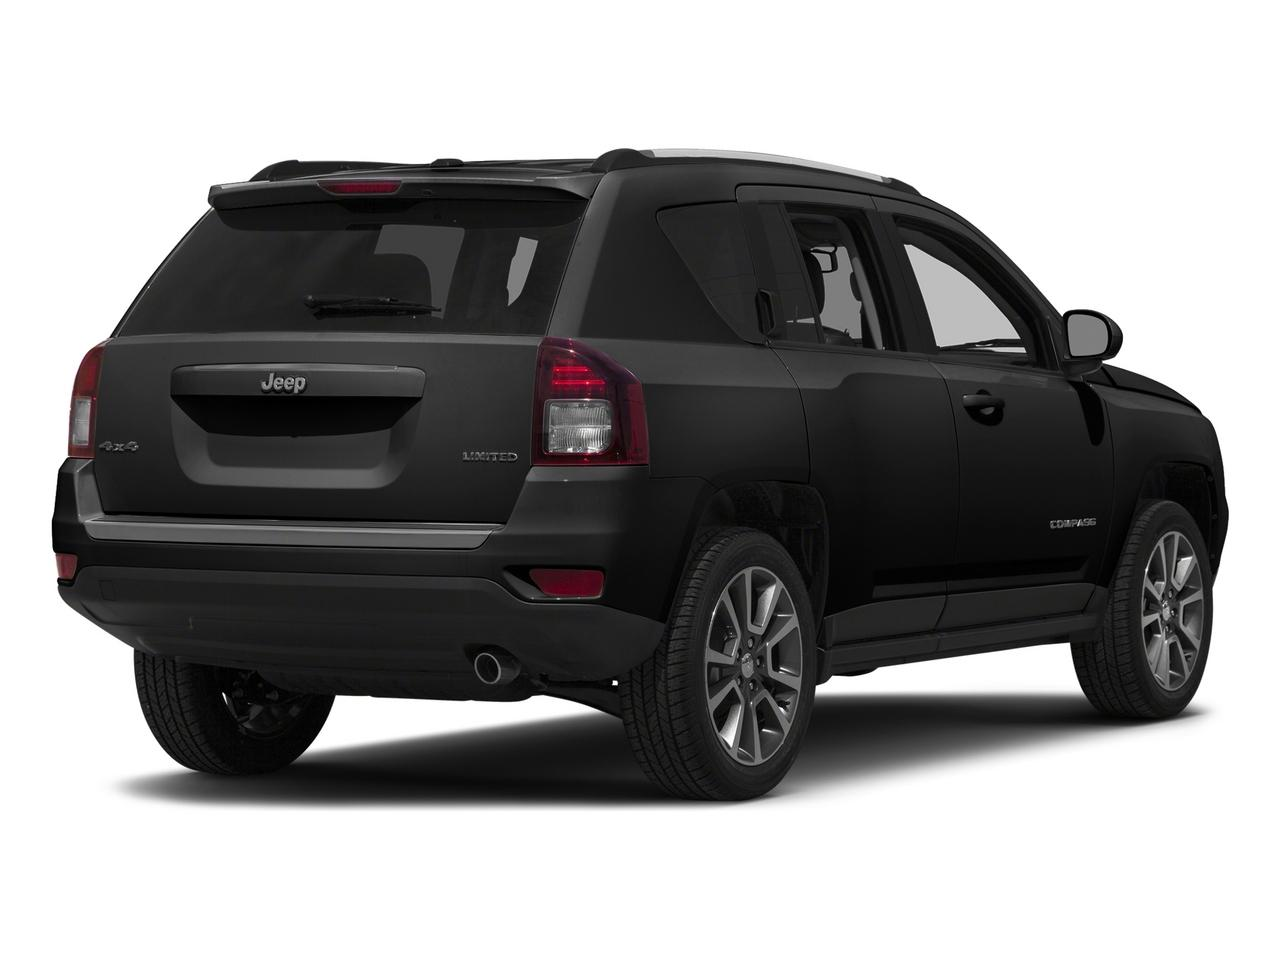 2015 Black Clearcoat Jeep Compass: Used Suv for Sale in ...